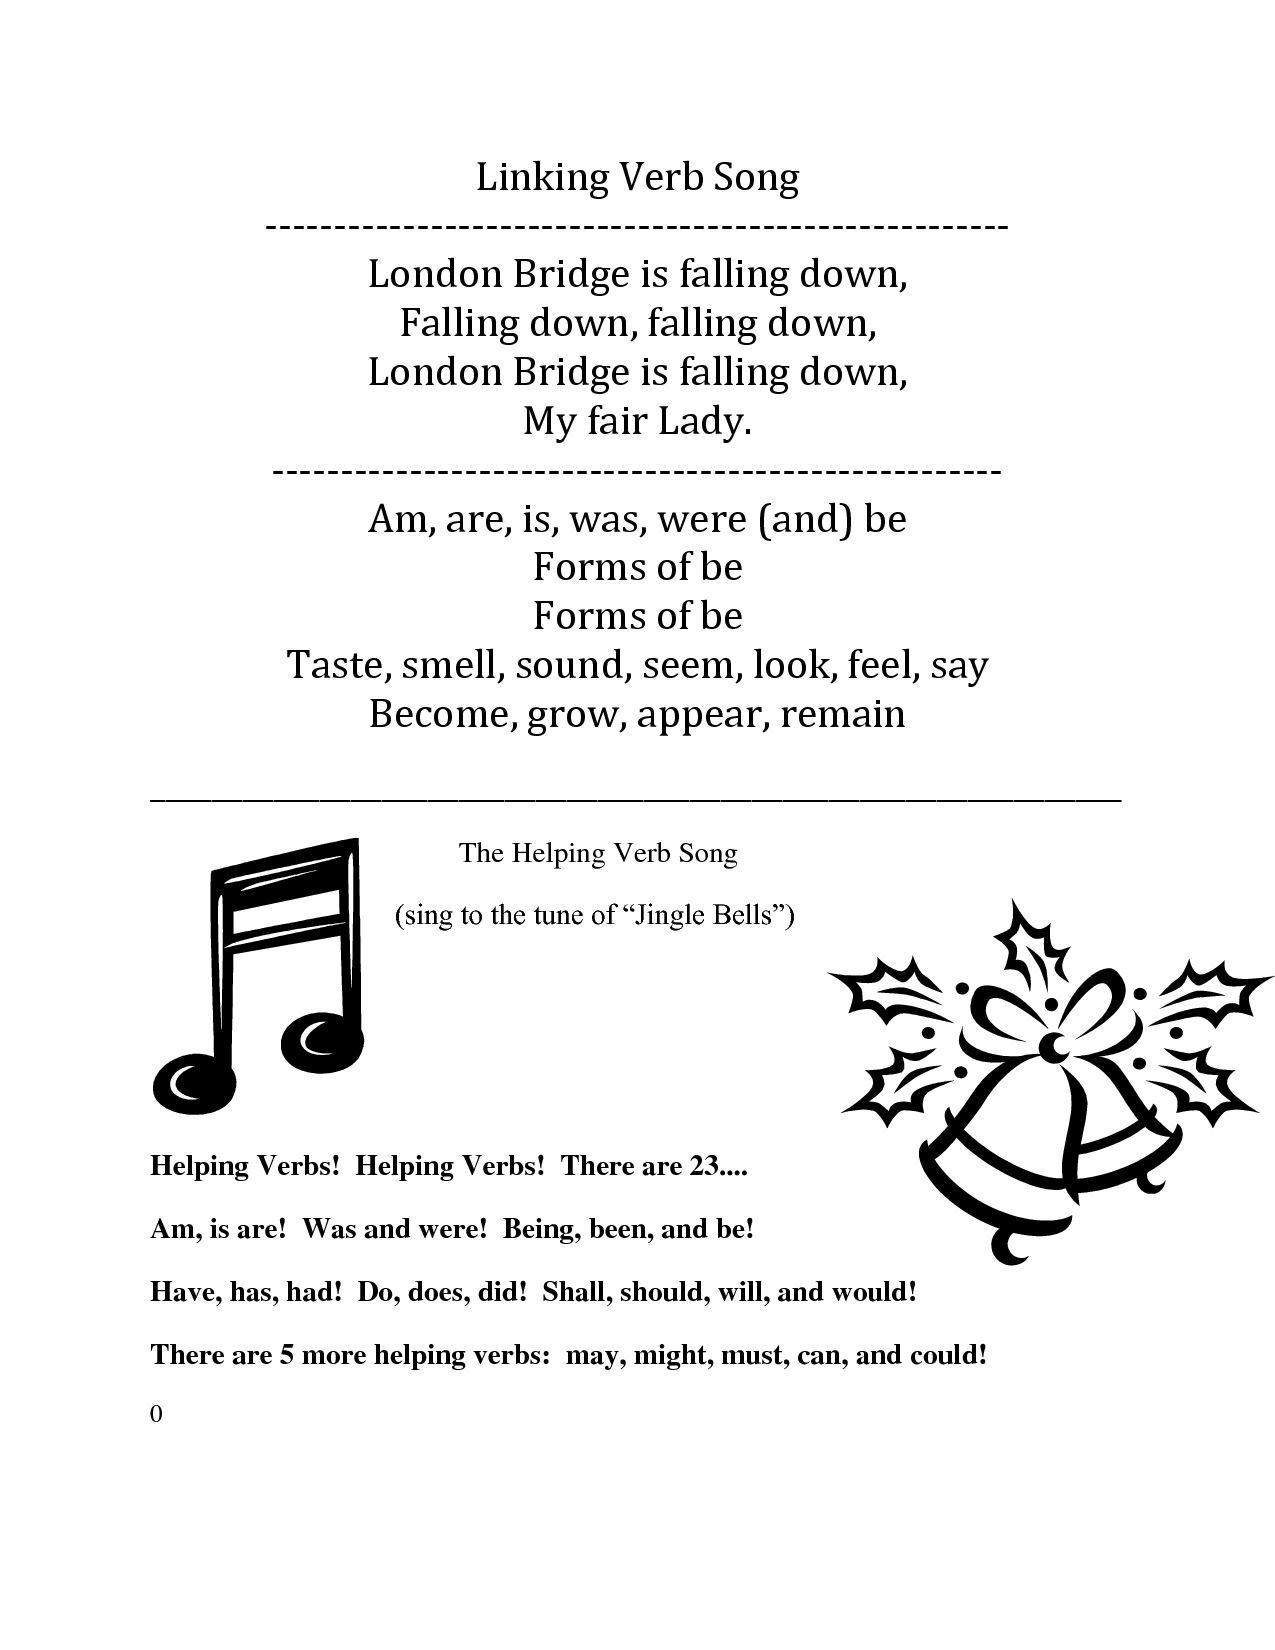 Uncategorized Linking Verb Worksheets linking verb song lyrics to london bridge is falling down and helping song